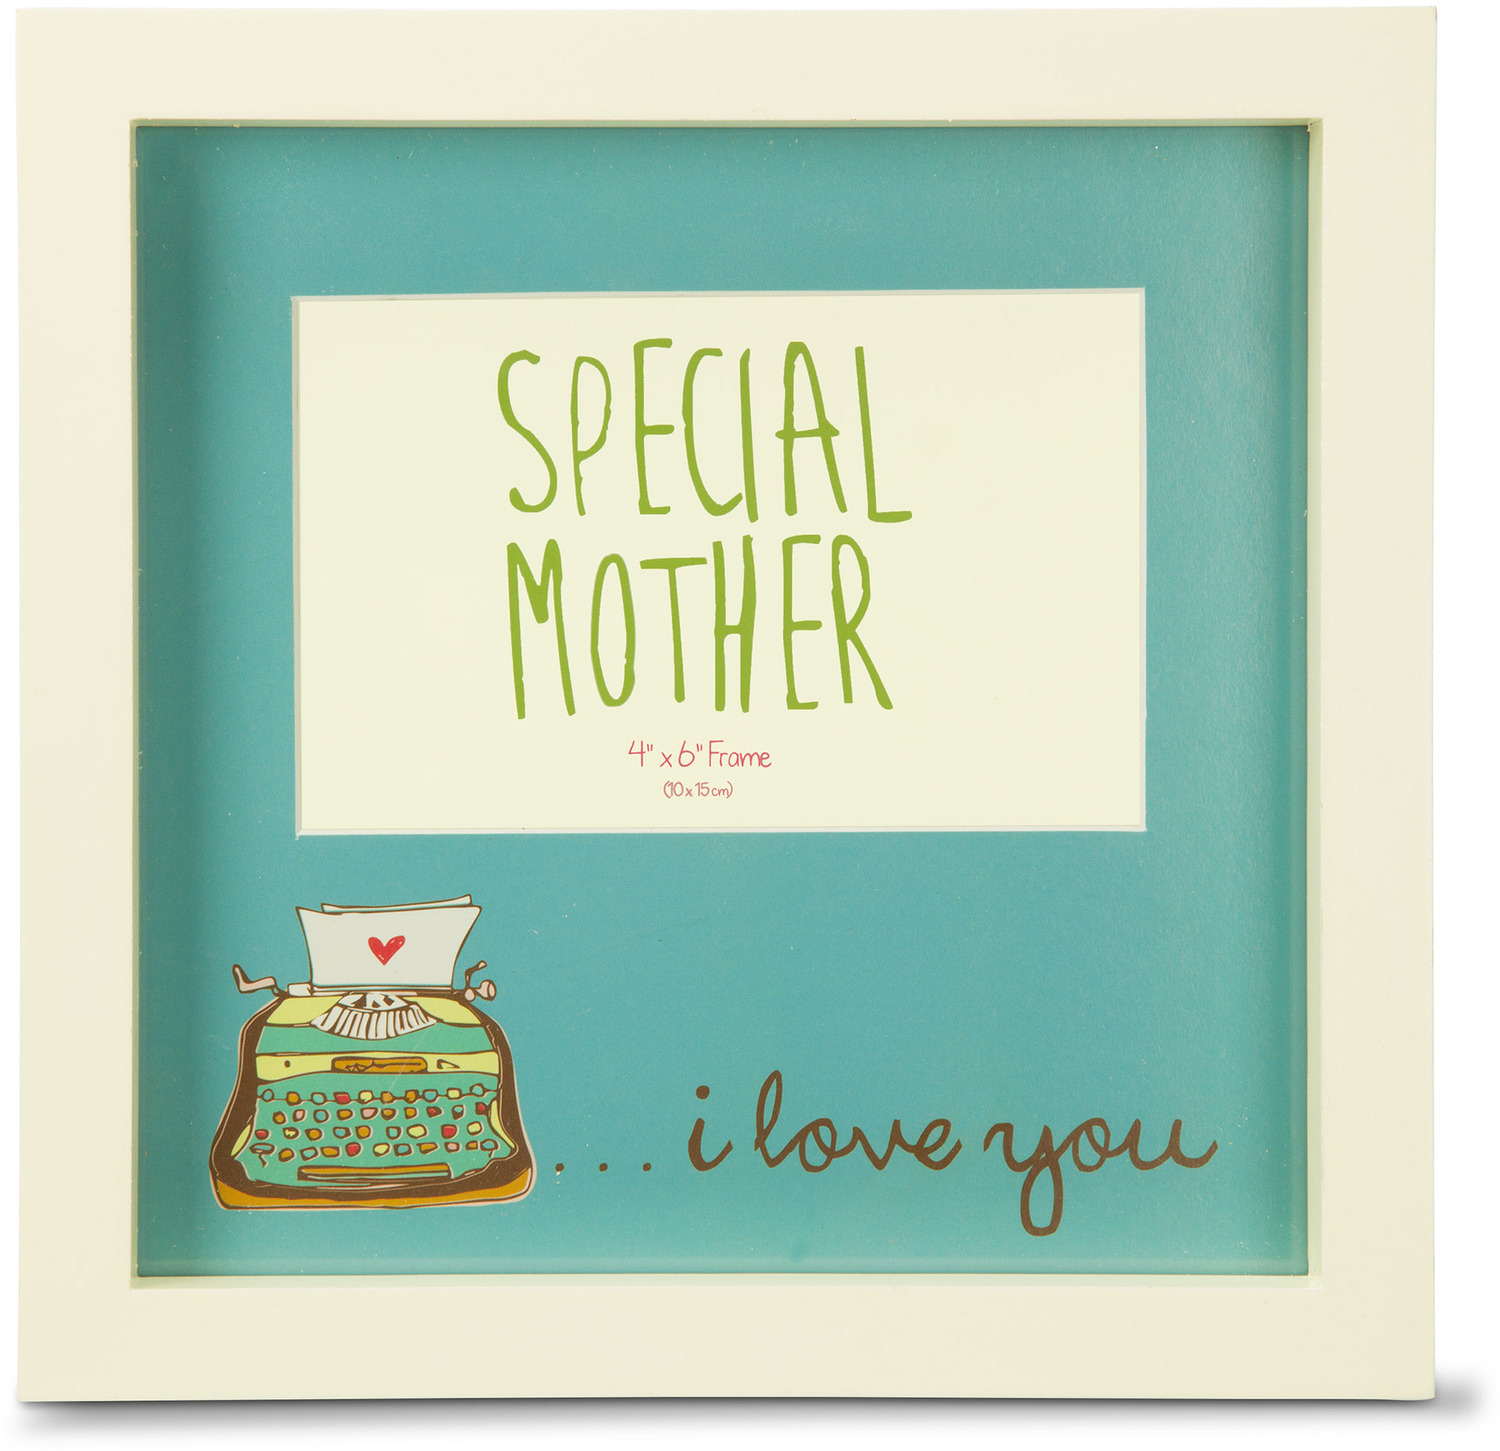 "Special Mother by A Mother's Love by Amylee Weeks - Special Mother - 9"" x 9"" Frame"